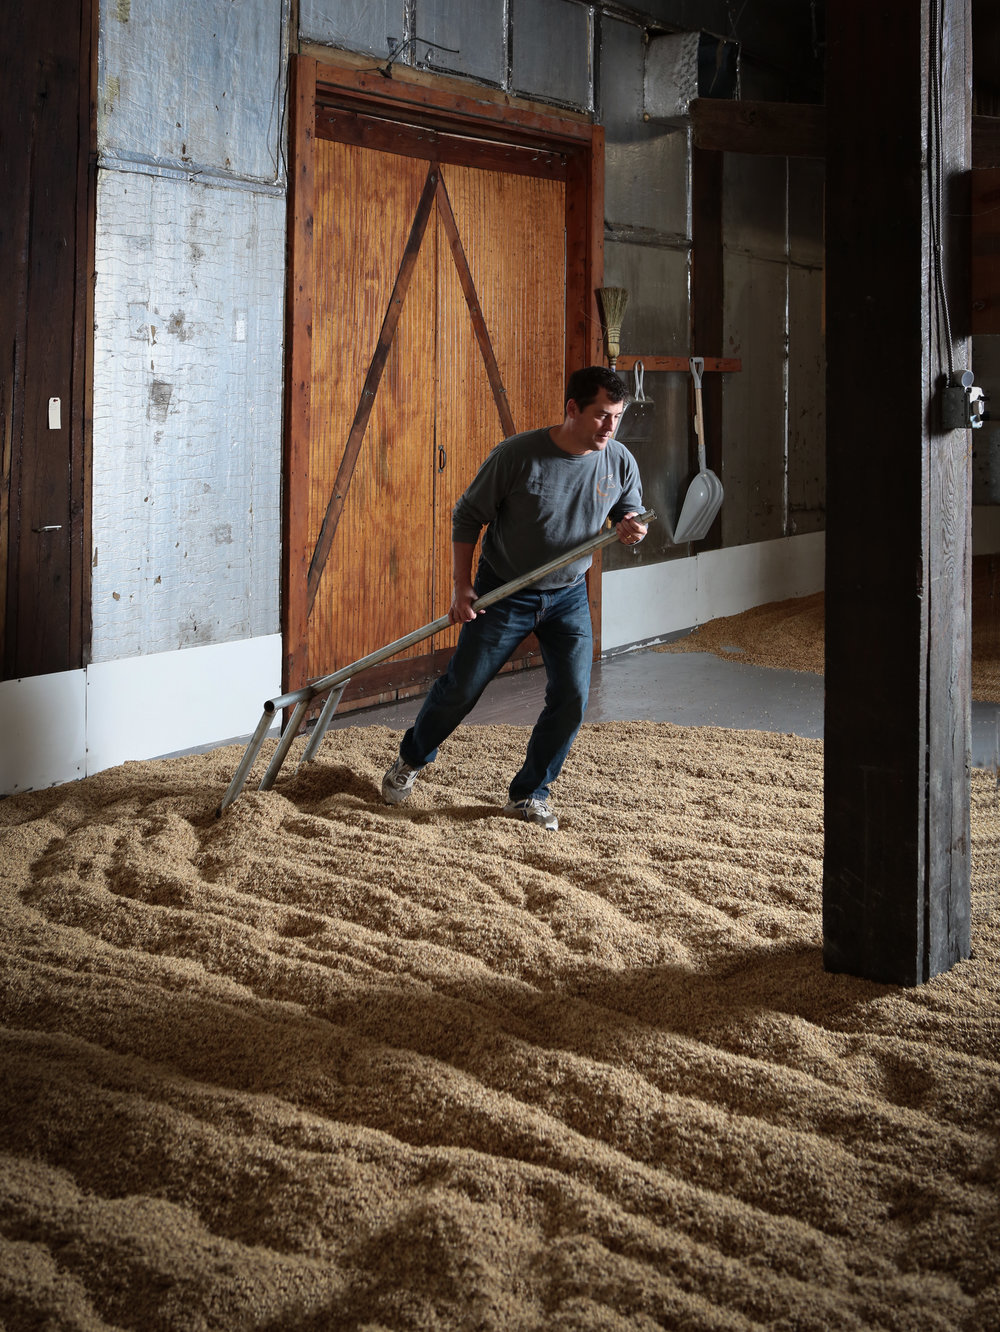 Rick Wasmund rakes the barley in the floor malting process.